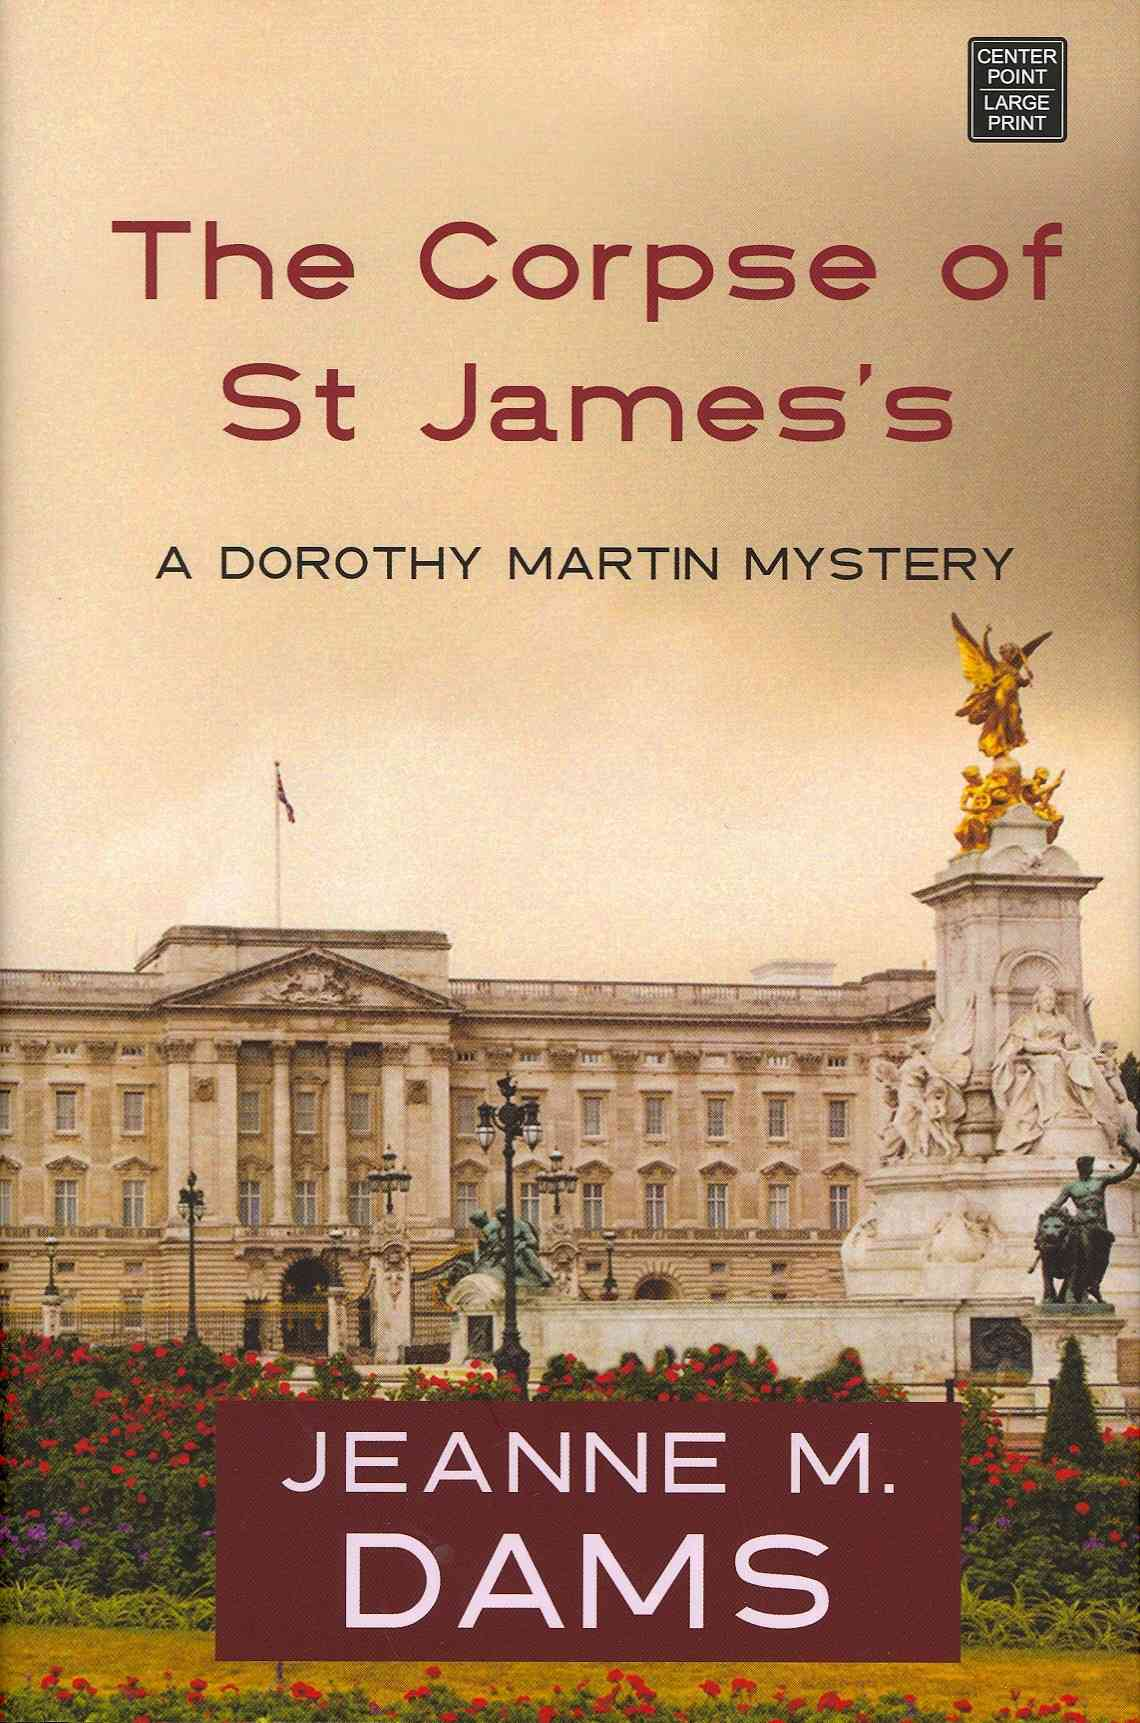 The Corpse of St. James's (Hardcover)